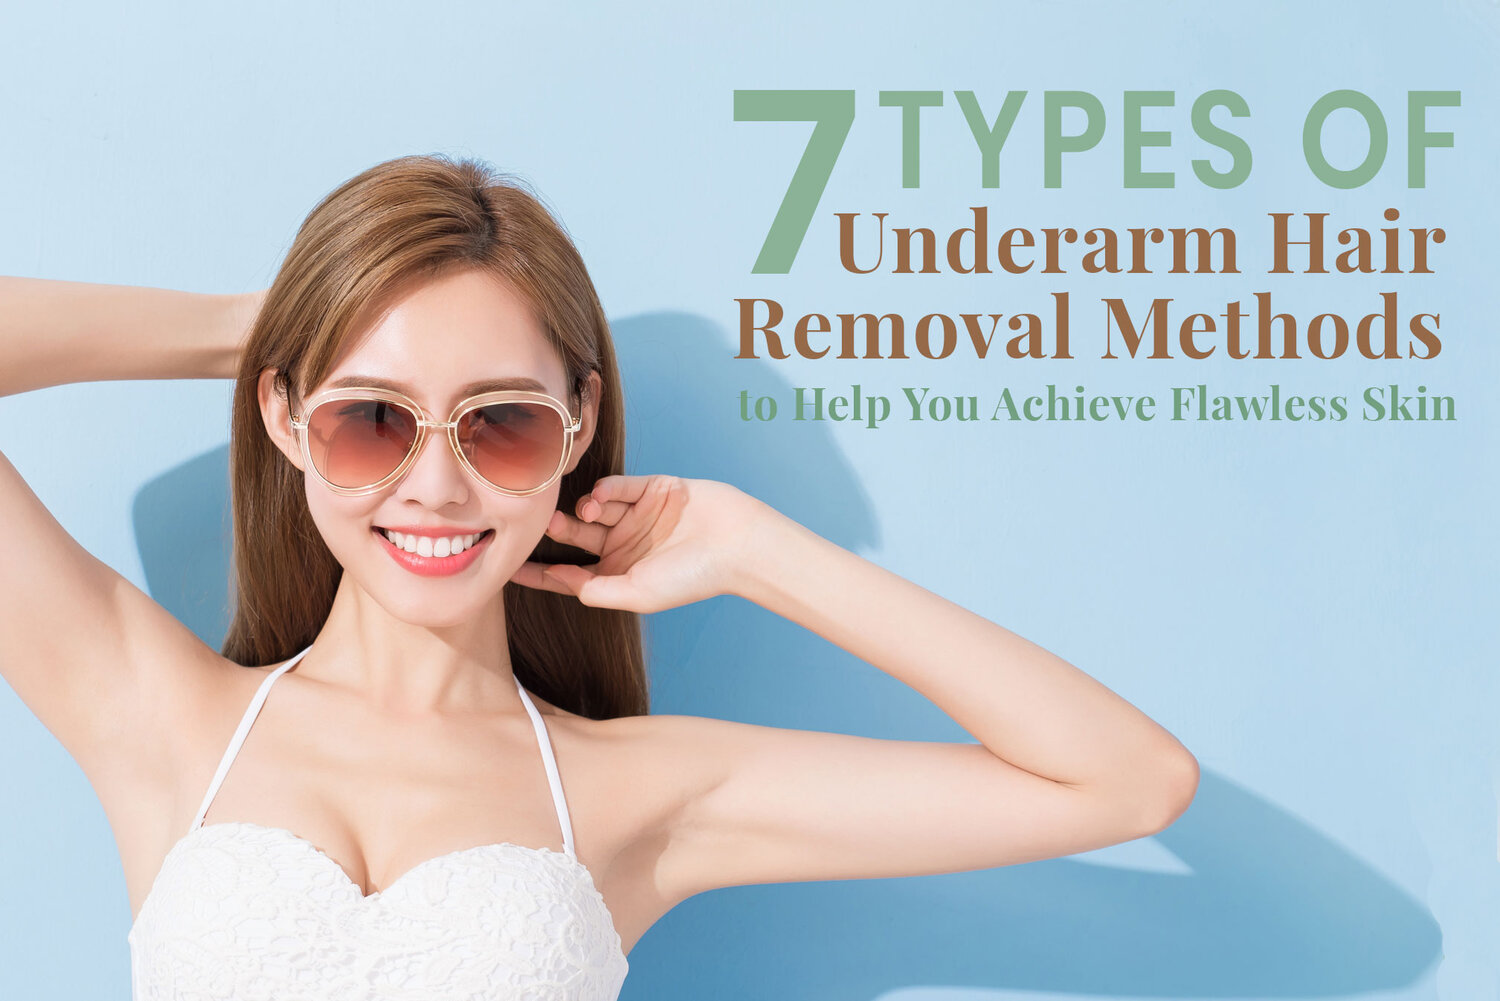 7 Types Of Underarm Hair Removal Methods To Help You Achieve